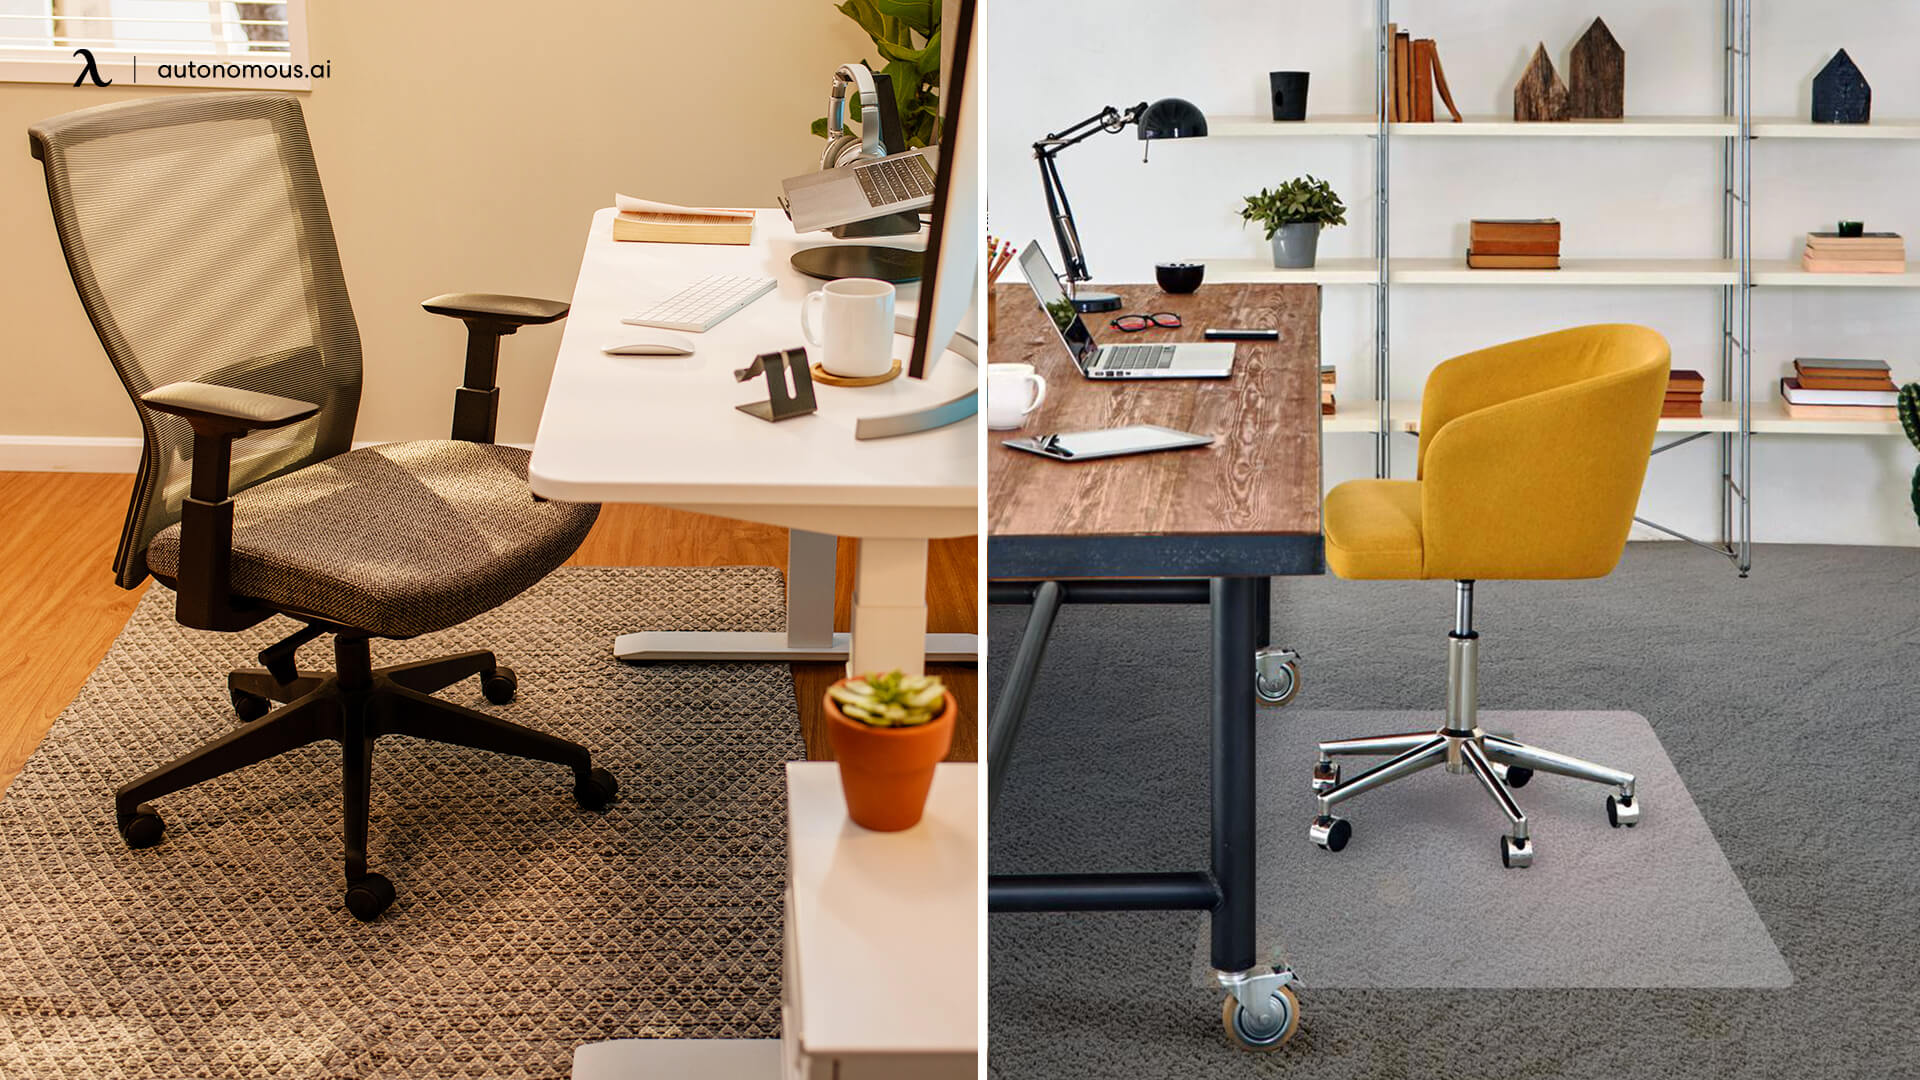 Furniture pad can protect wood floor from office chair